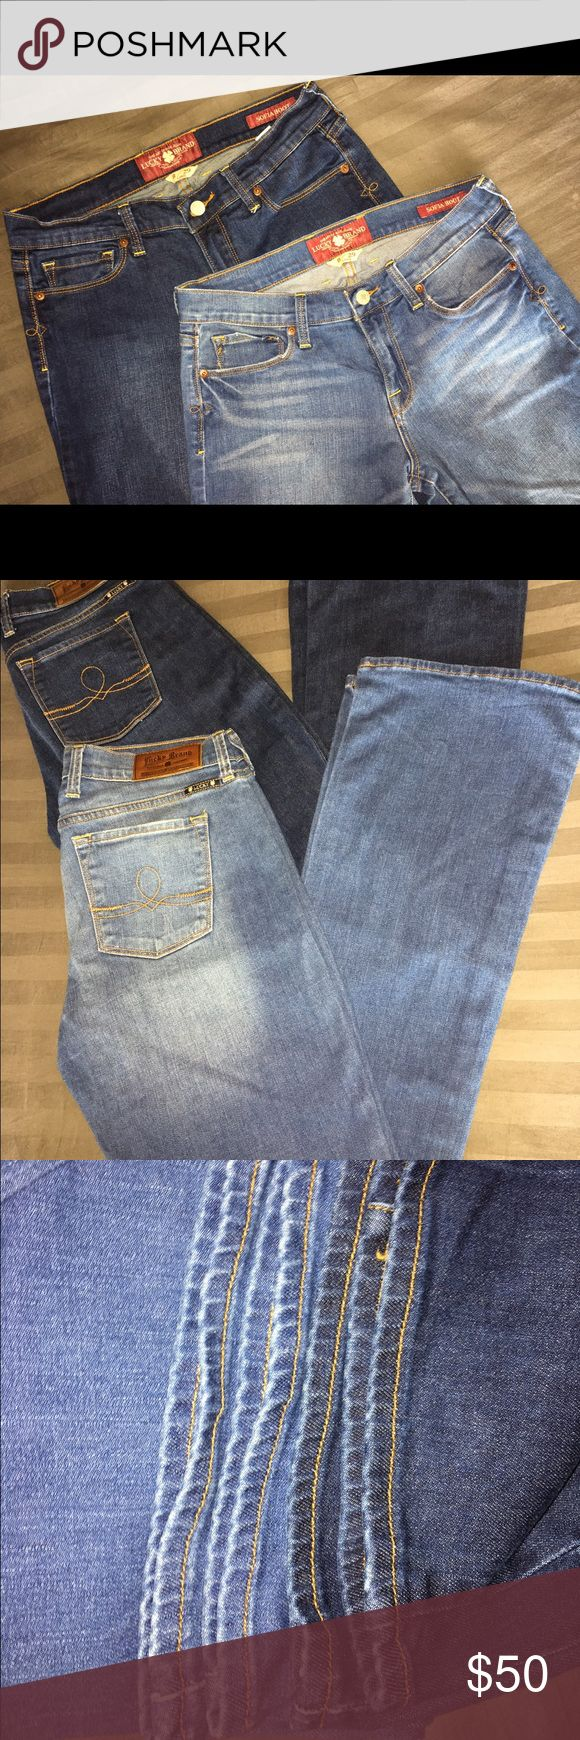 """LOT: 2 NEW WO TAGS LUCKY BRAND 🍀 JEANS DENIM 8/29 I bought these brand-new from the lucky store on sale for $79 each and literally washed them then let them sit in my closet. They are my favorite cut that fit mid-low waist and have a very slight boot cut with a fitted thigh, they make your butt look amazing!!! Unfortunately, my size has changed so I never got to wear these 2 pairs. One is a dark wash, one is a true blue denim wash. Both are size 8/29 Long, 99% cotton/1% spandex. 33.5""""…"""